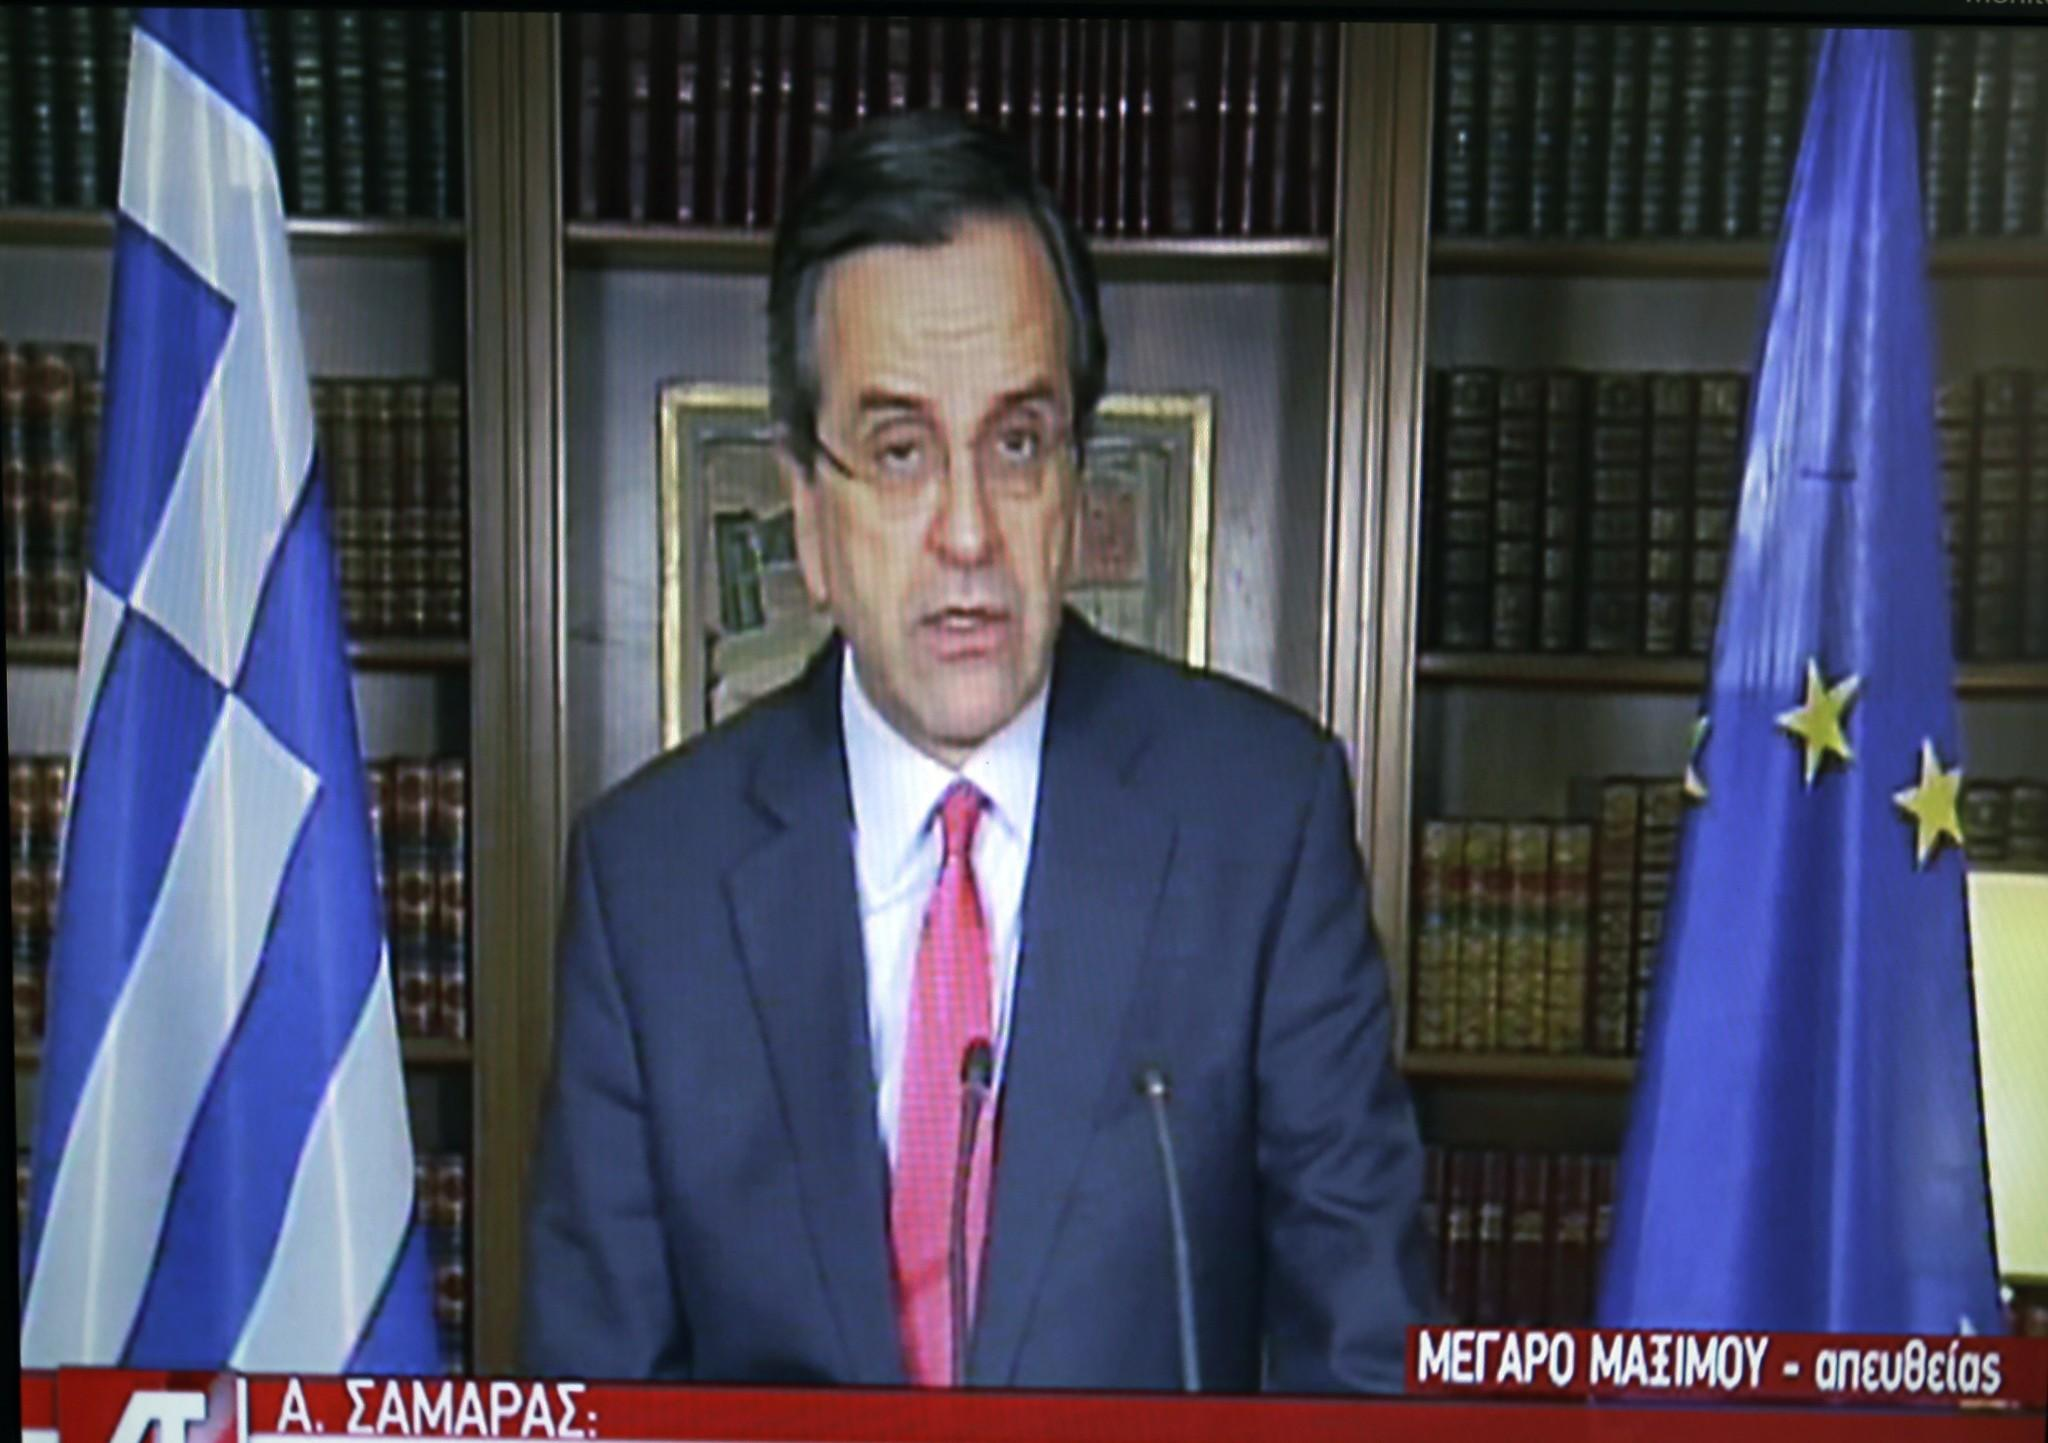 In this image taken from State TV, Greece's Prime Minister Antonis Samaras remarks on the bond sale from his office in Athens.